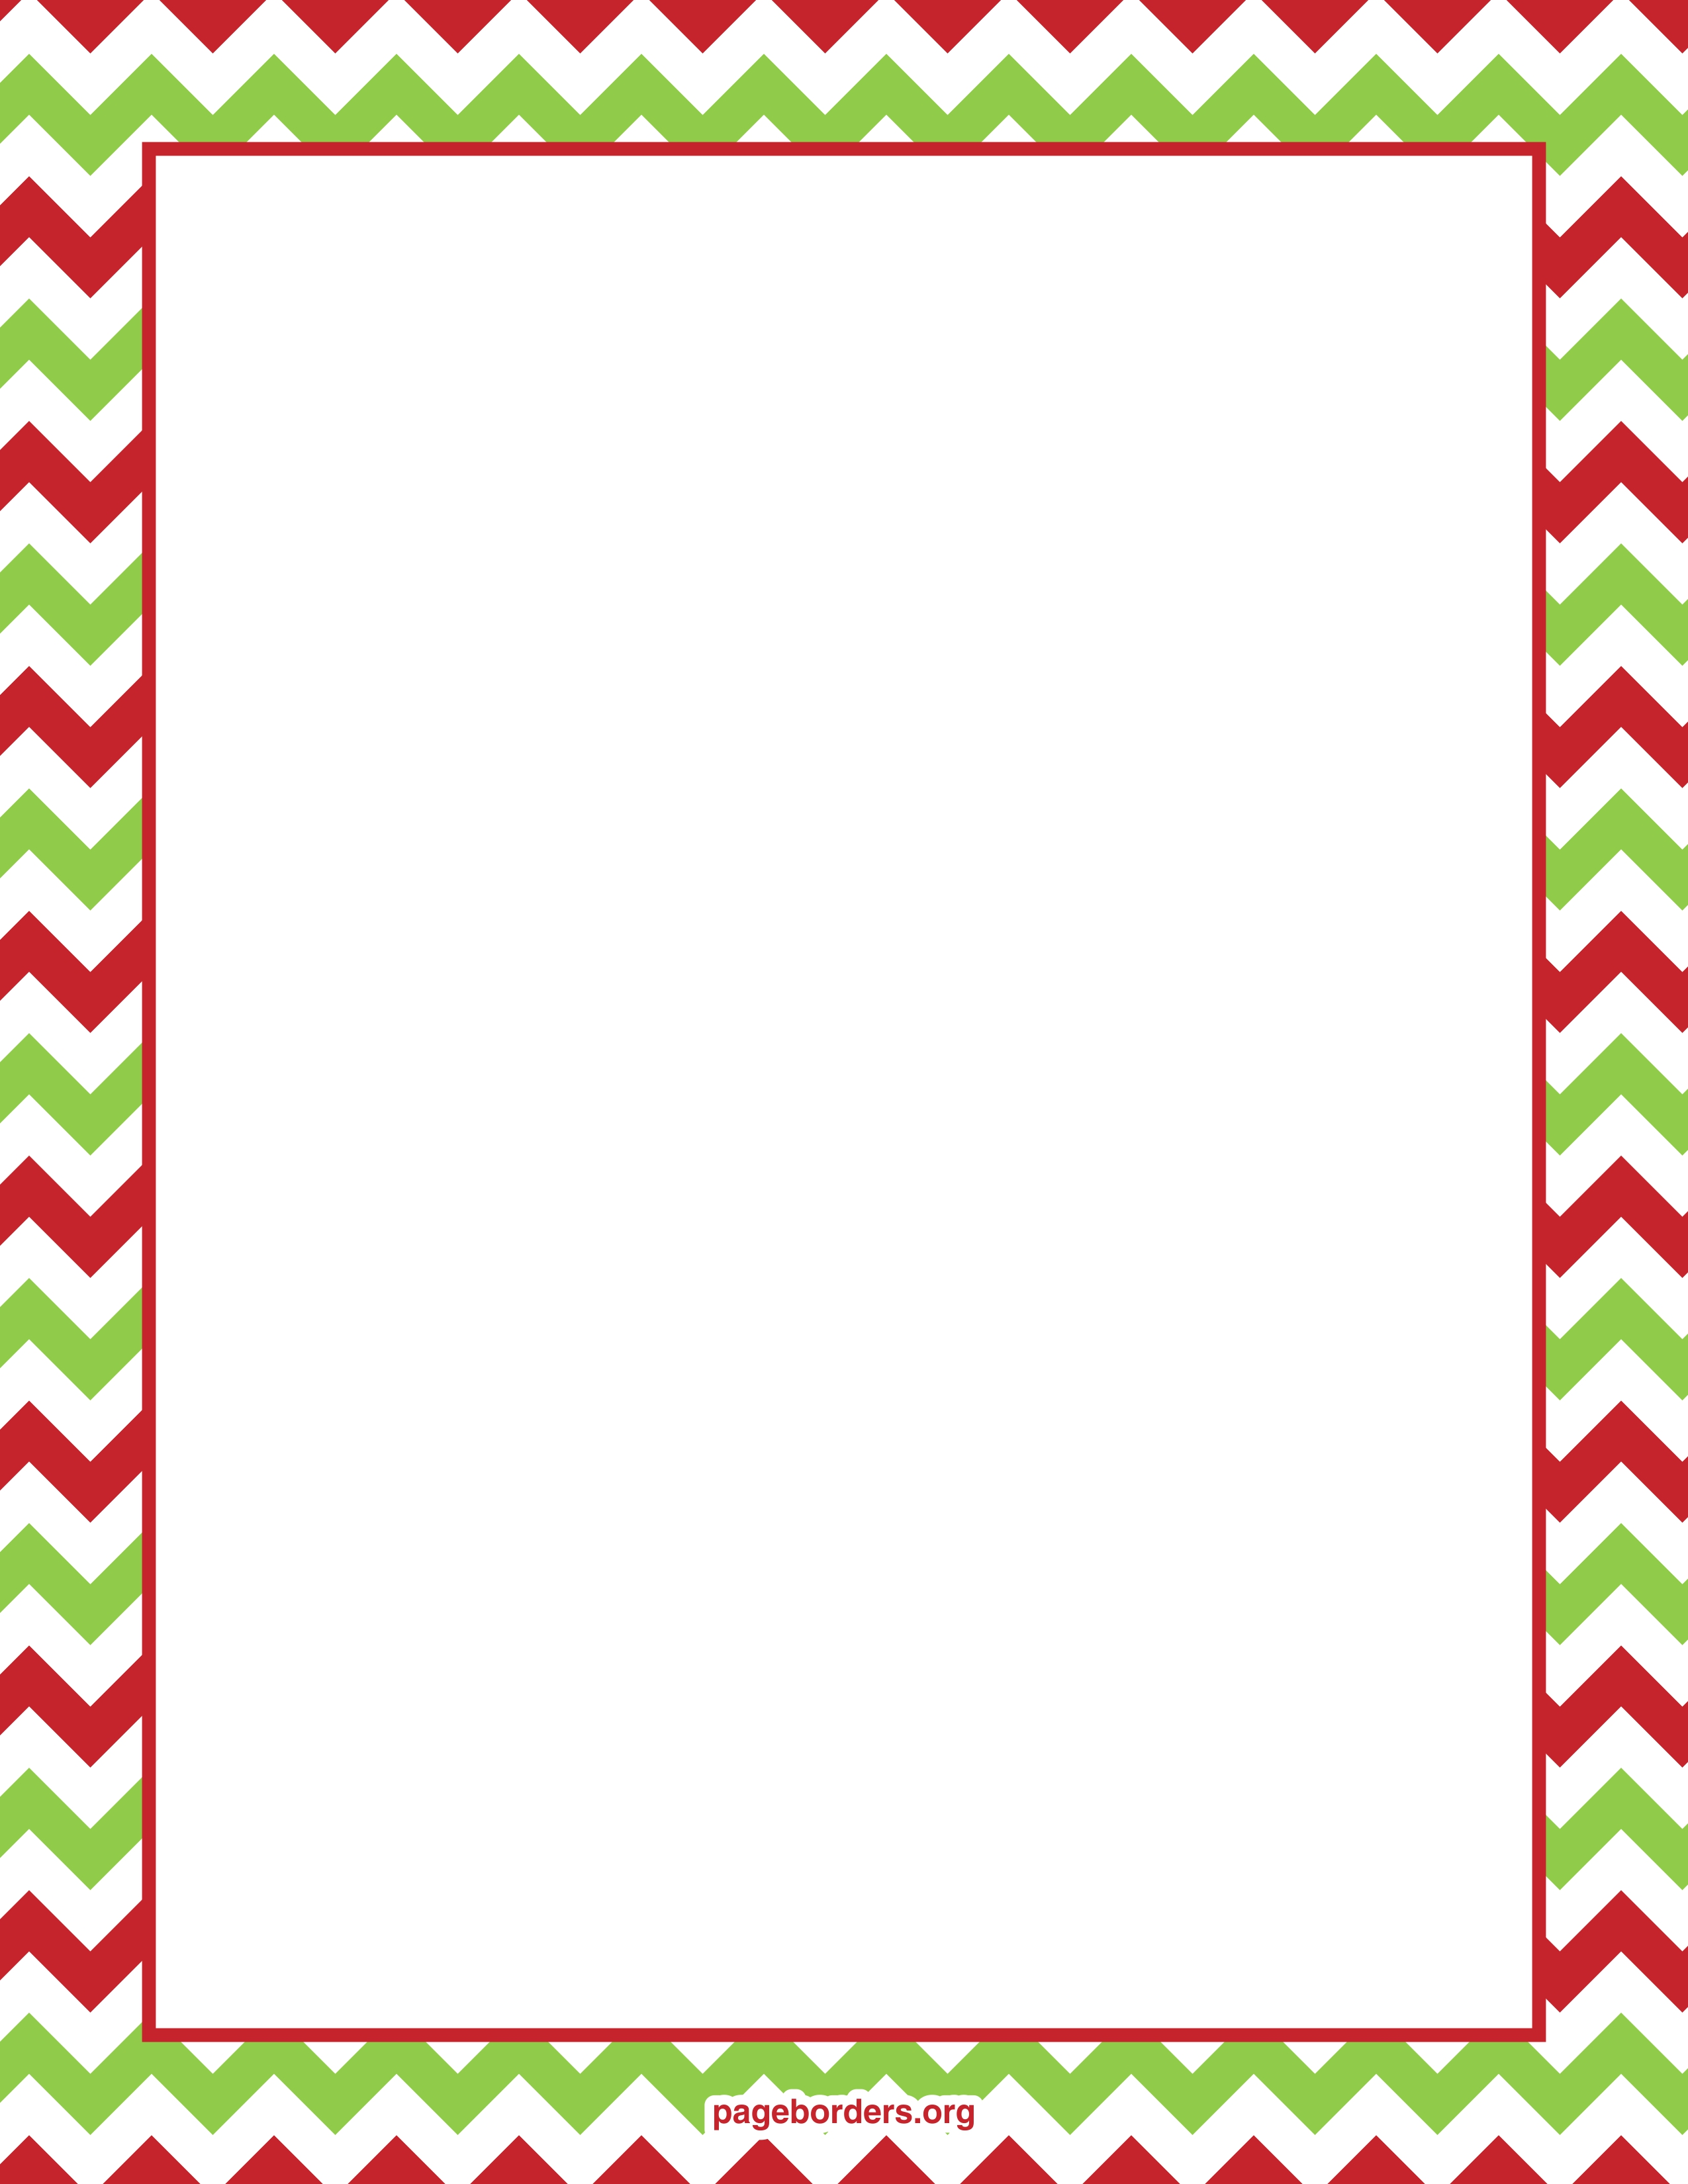 Christmas Borders Clipart.44 Free Christmas Borders Clipart Clipartlook